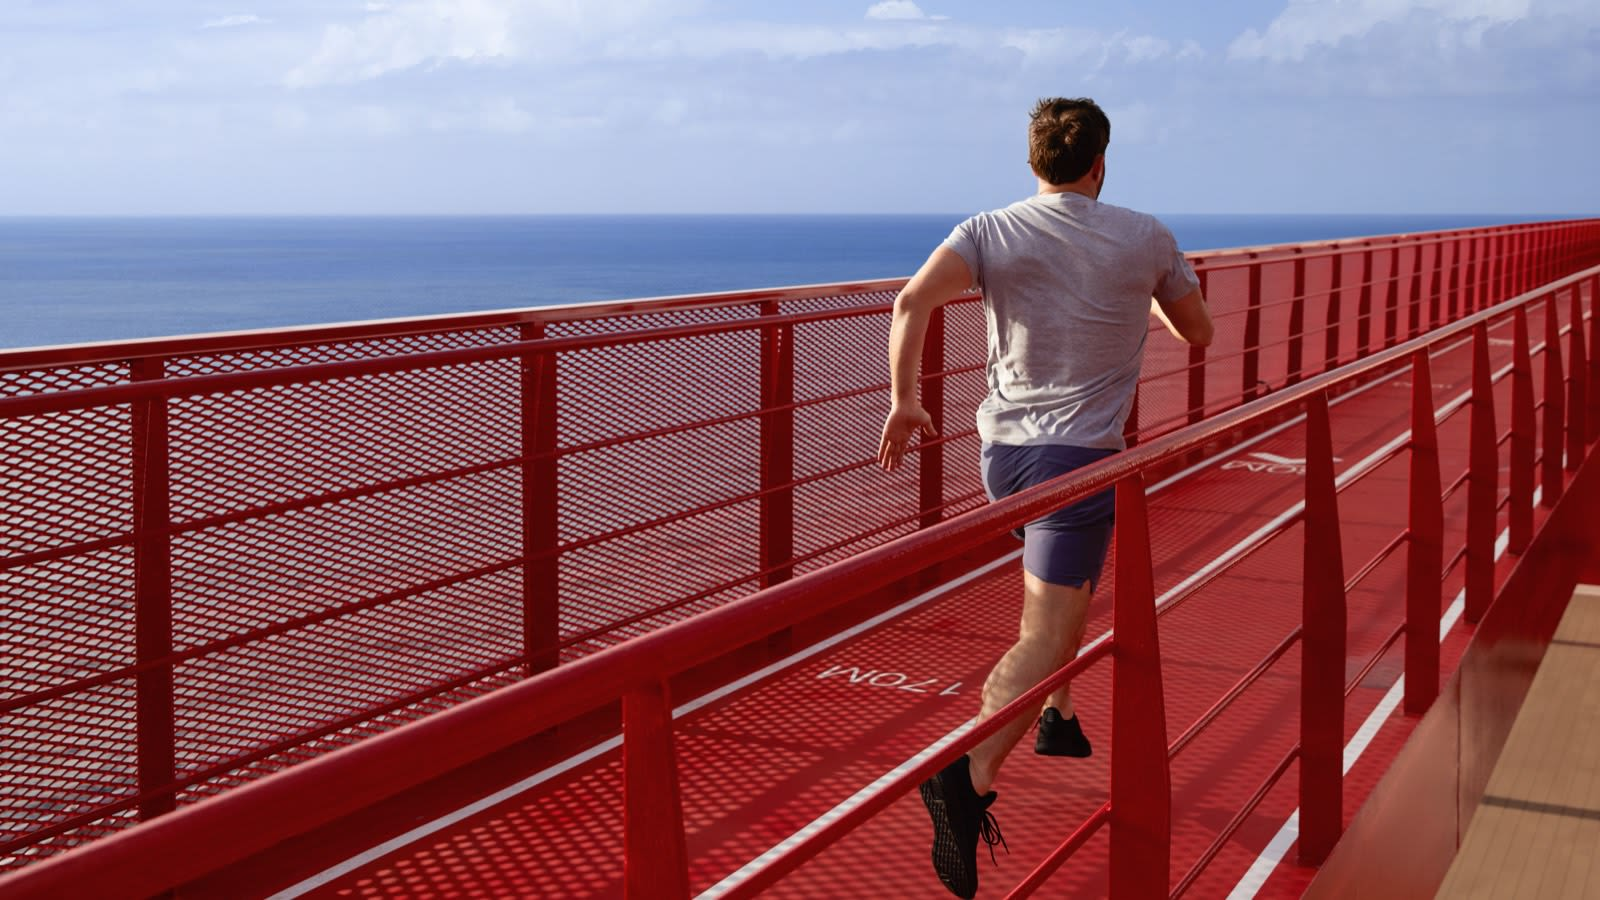 virgin-voyages_2021-04_running-track-exterior-lifestyle-male-runner